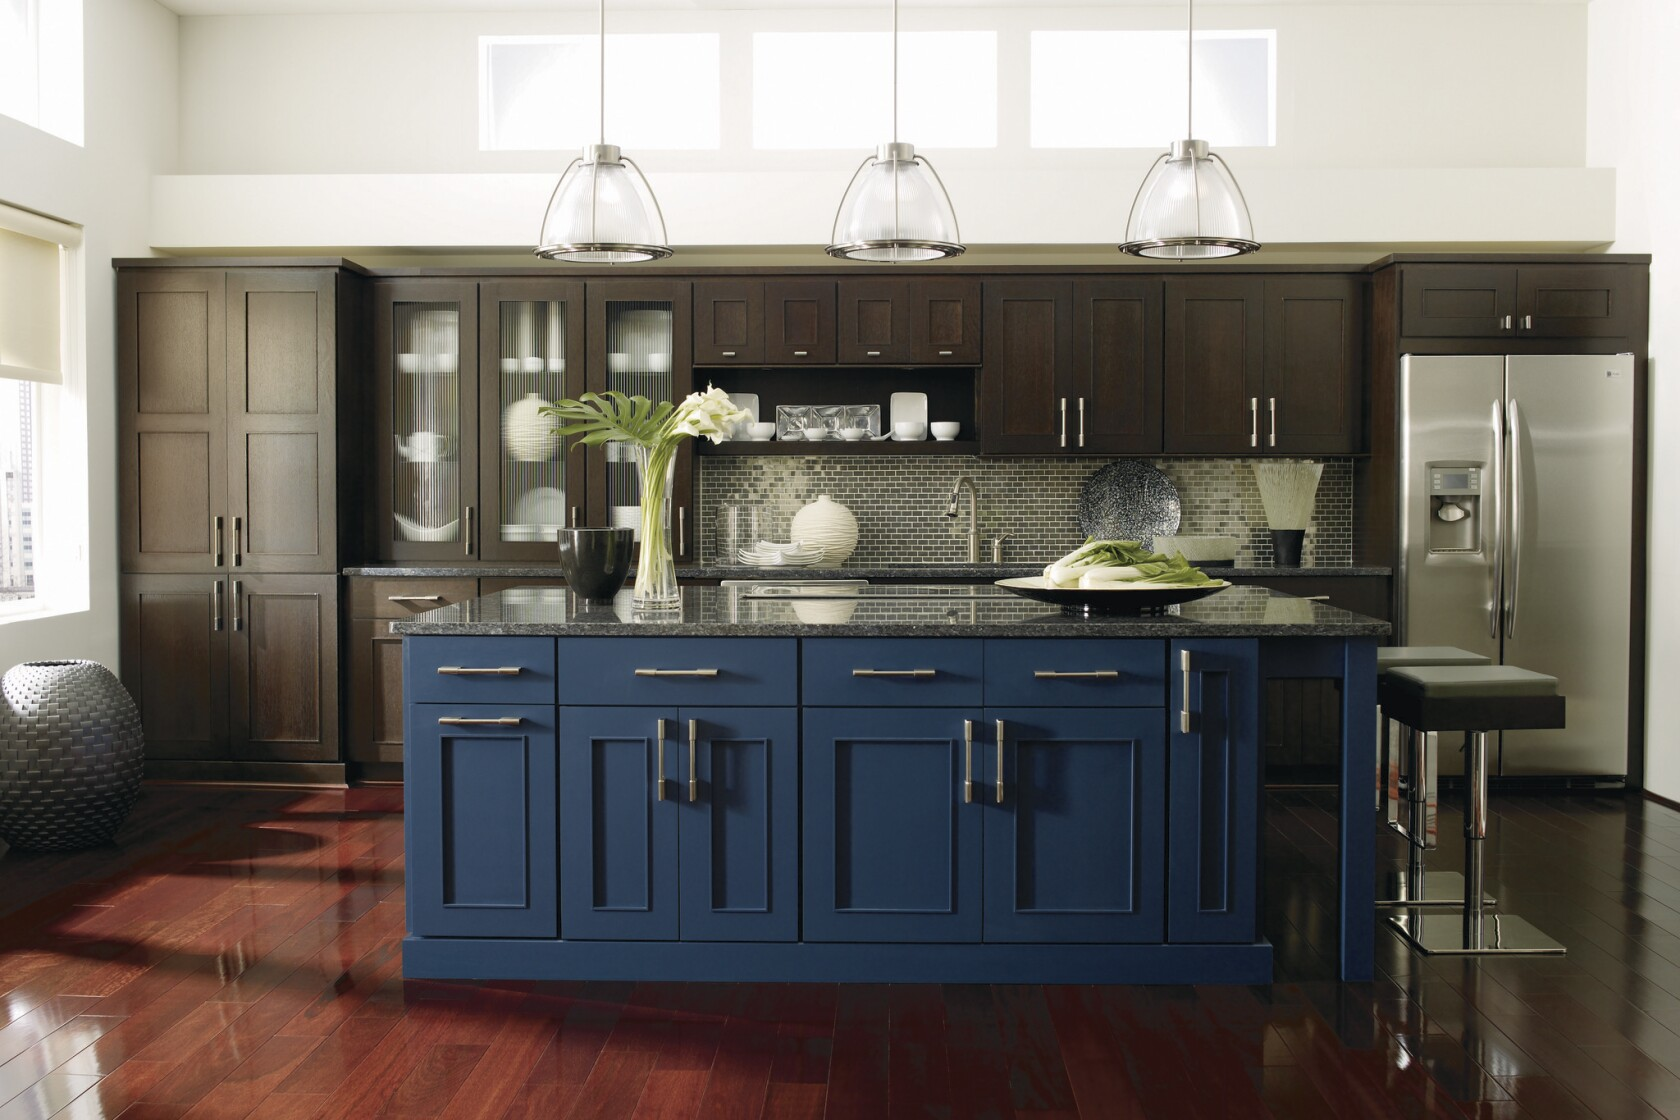 Kitchen Islands Are Getting Bigger Better And More Colorful